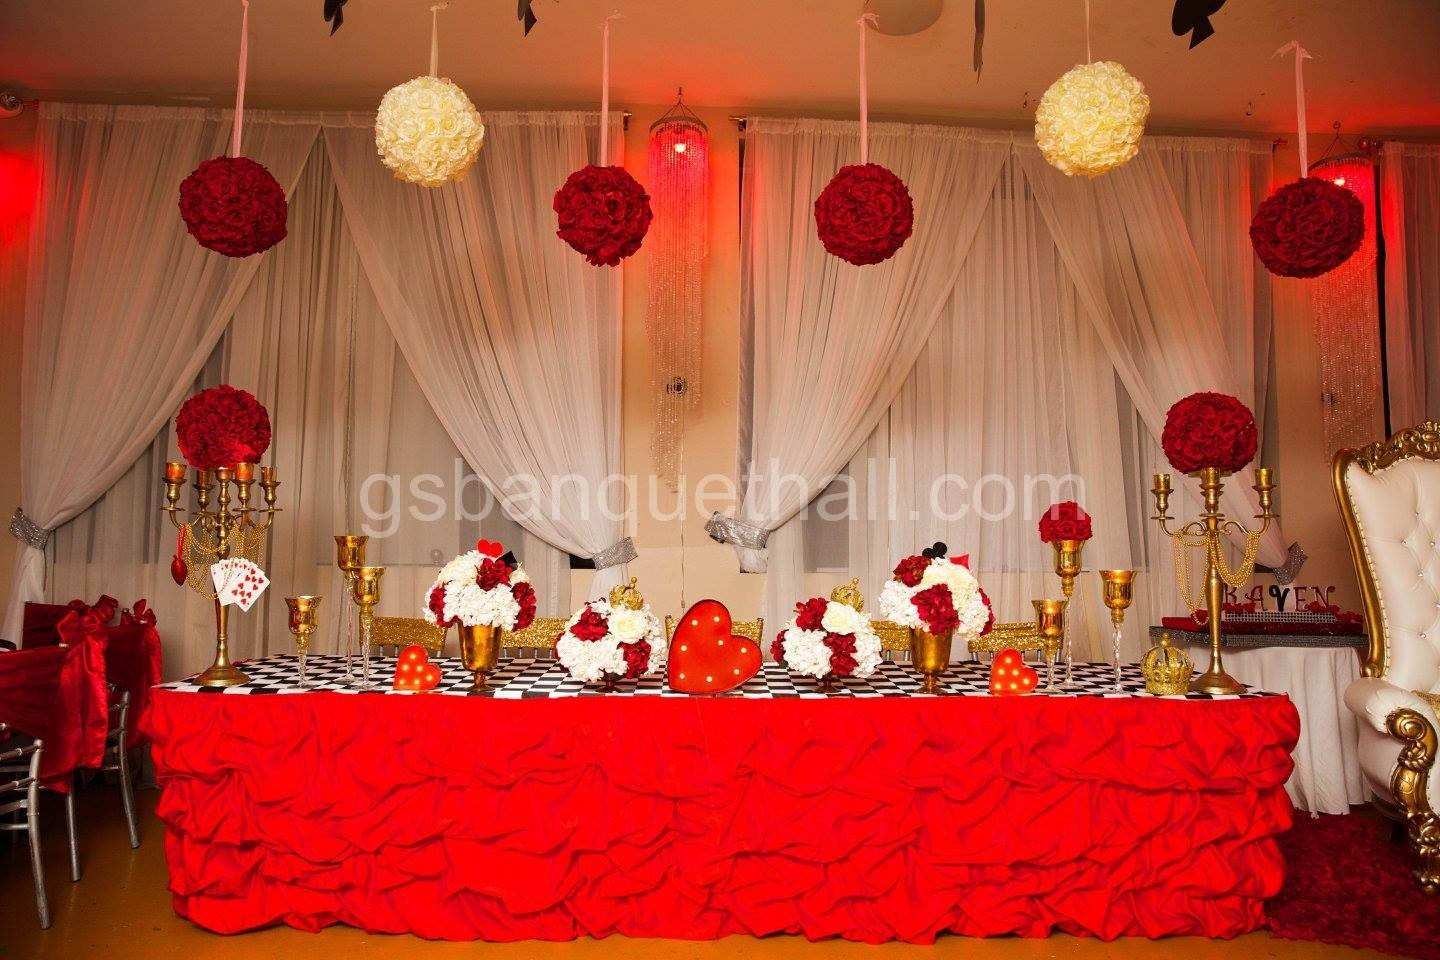 Queen of Hearts Party decoration Reina de corazones